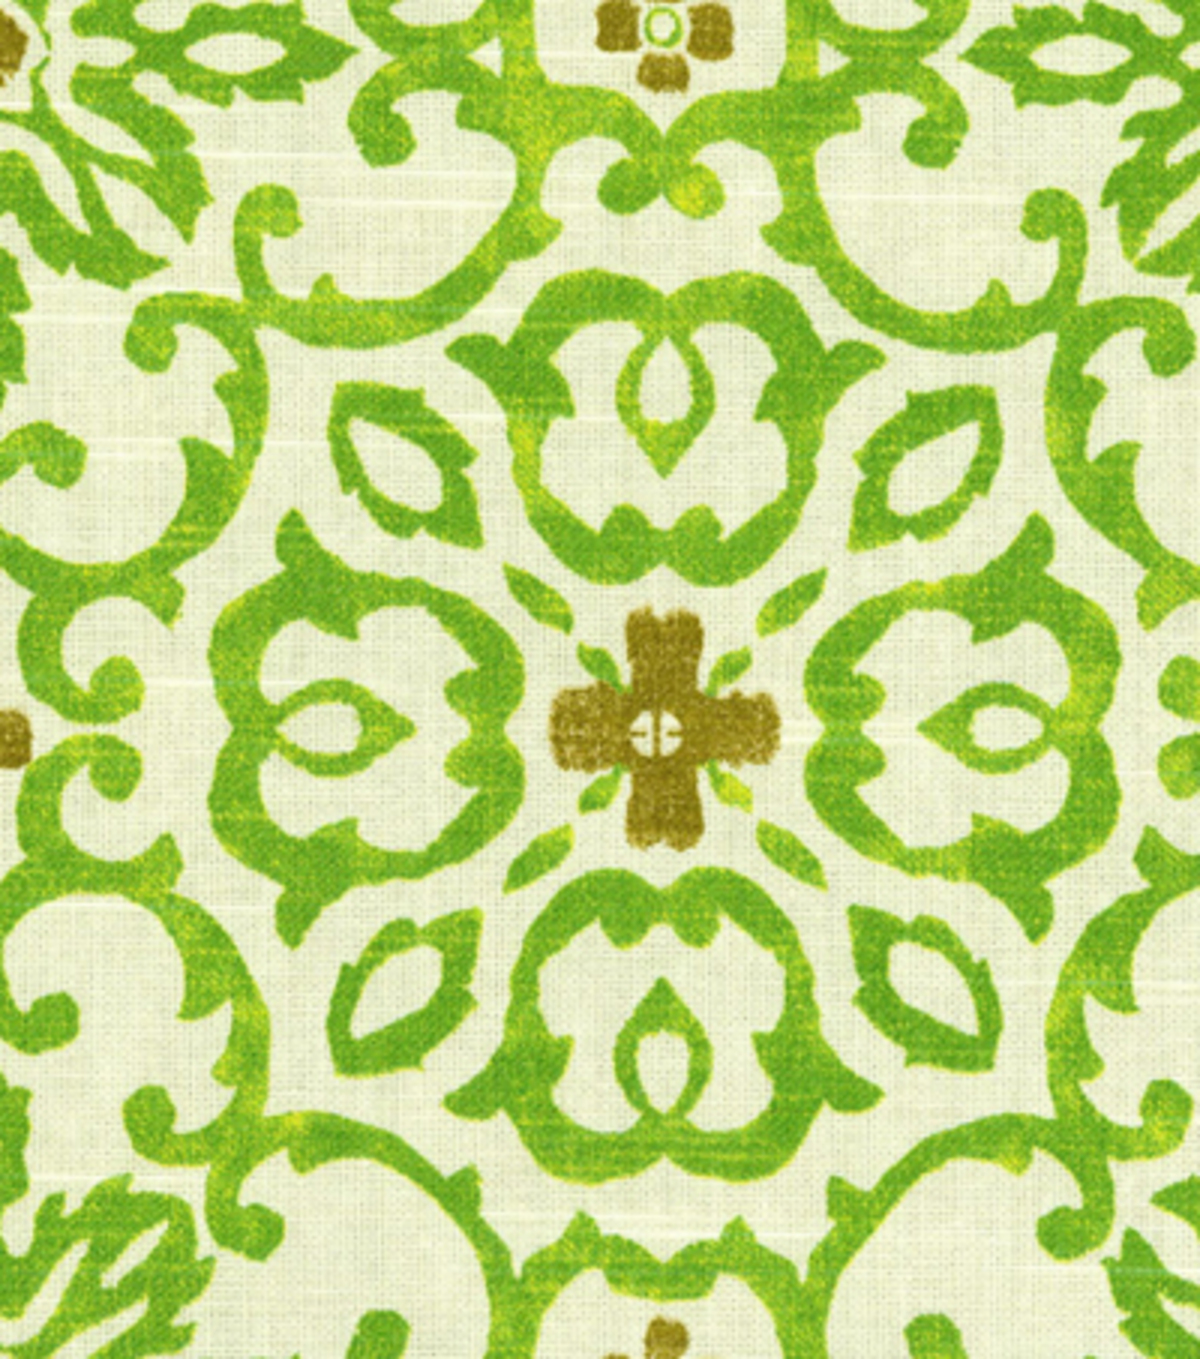 Home Decor 8\u0022x8\u0022 Fabric Swatch-HGTV HOME Souvenir Scroll Granny Smith